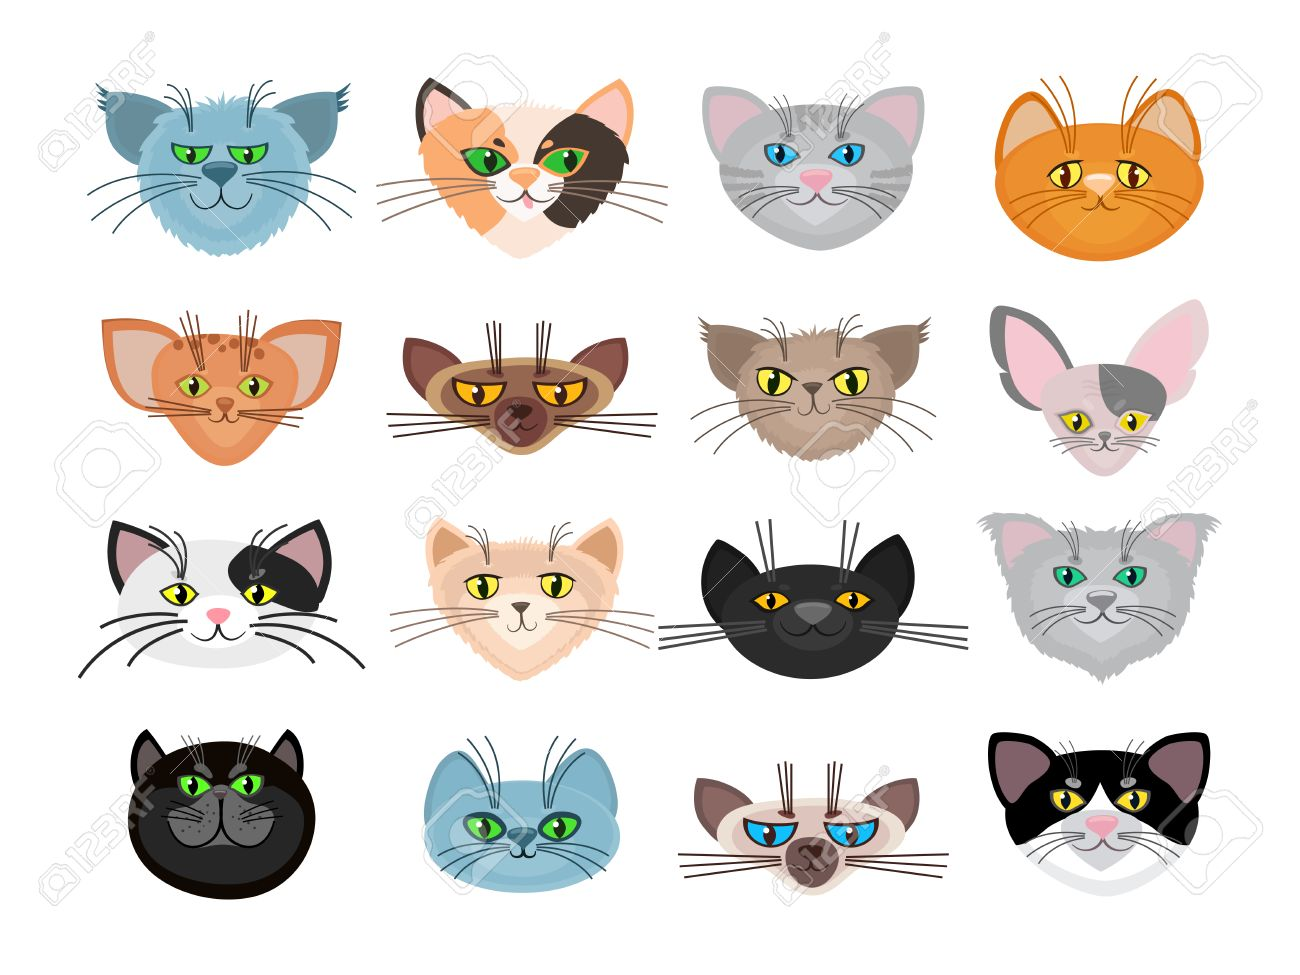 Cute Cat Faces Vector Illustration Muzzle Animals And Set Of Pets With Whiskers Stock